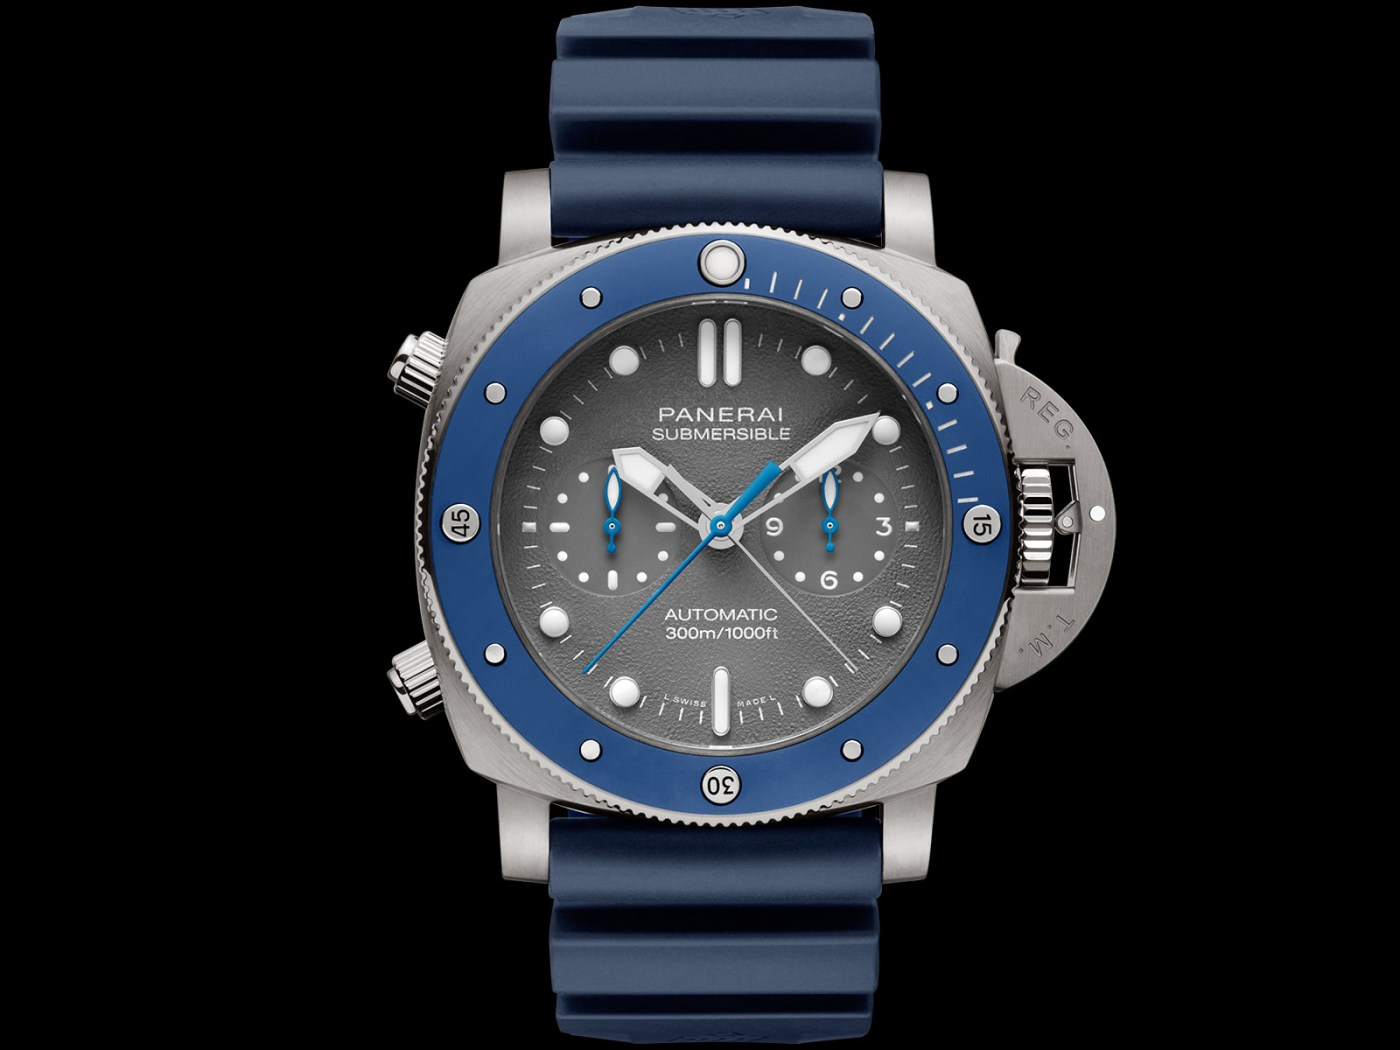 Panerai Submersible Chrono Guillaume Néry Edition PAM982